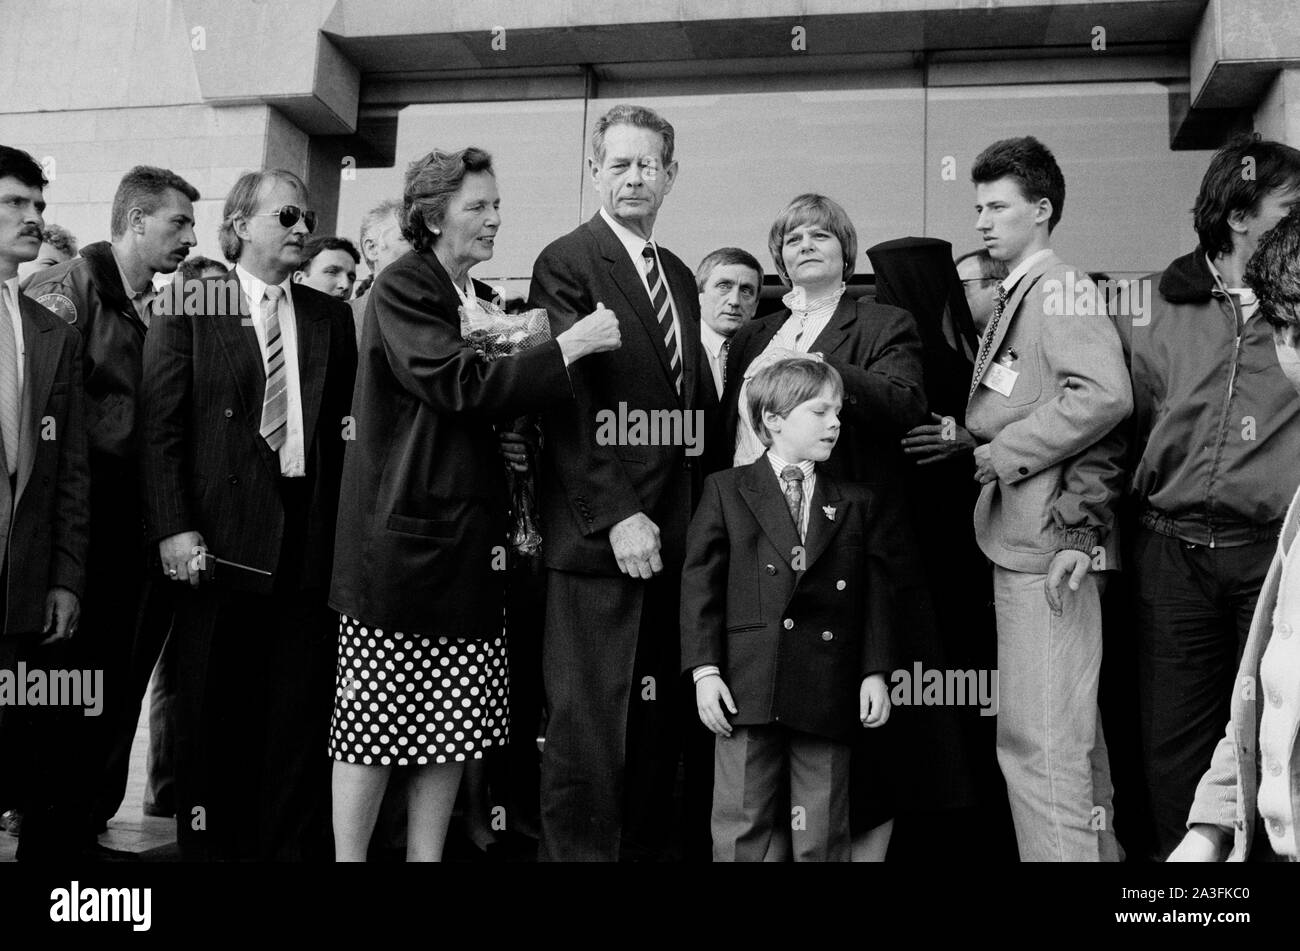 King Michael I of Romania, with Queen Anne, and his family, arrives back in Romania from exile, in Bucharest, Romania, in 1992. Stock Photo